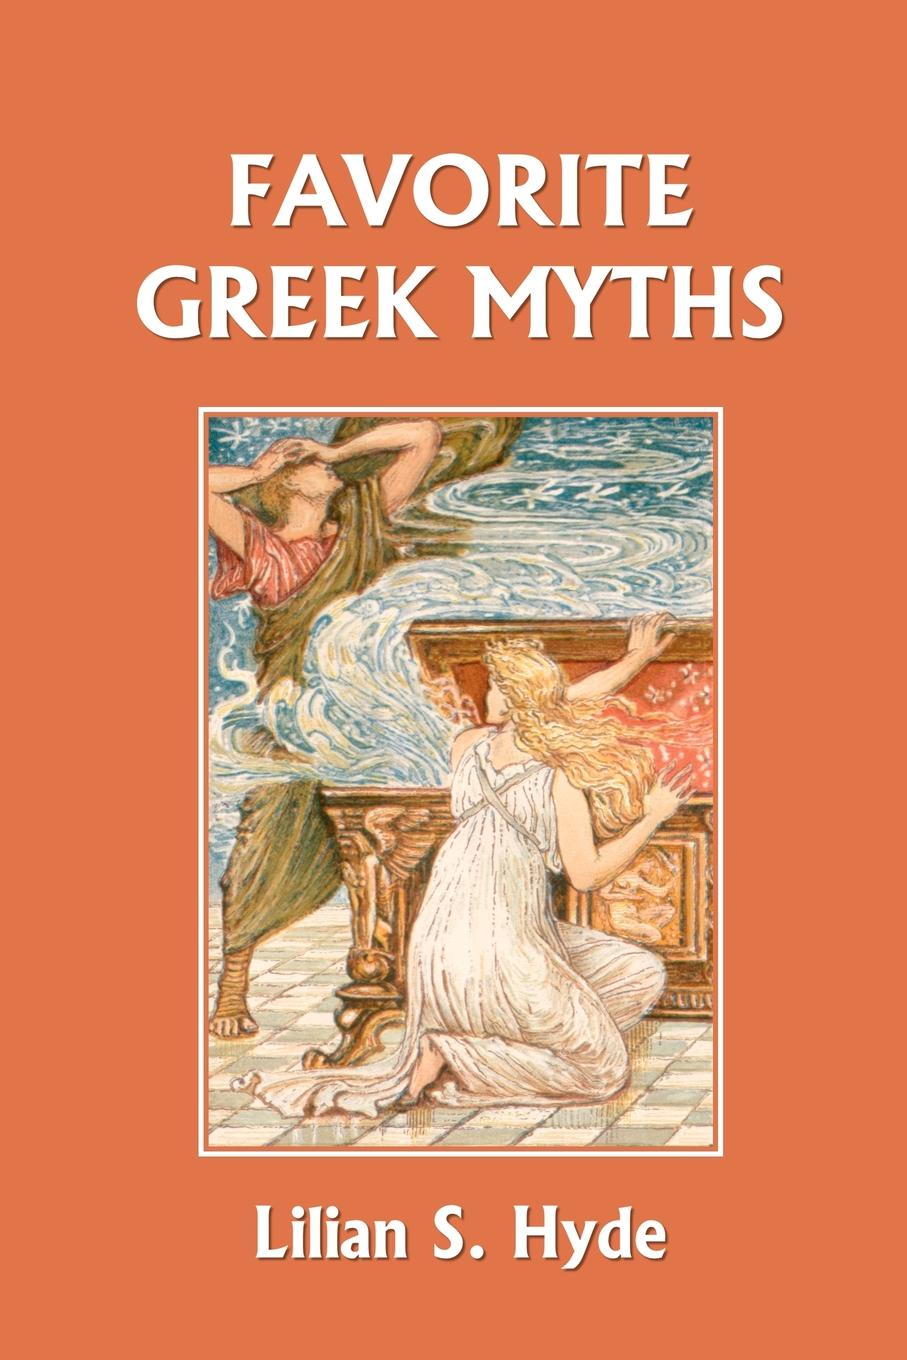 Lilian Stoughton Hyde Favorite Greek Myths (Yesterday's Classics)